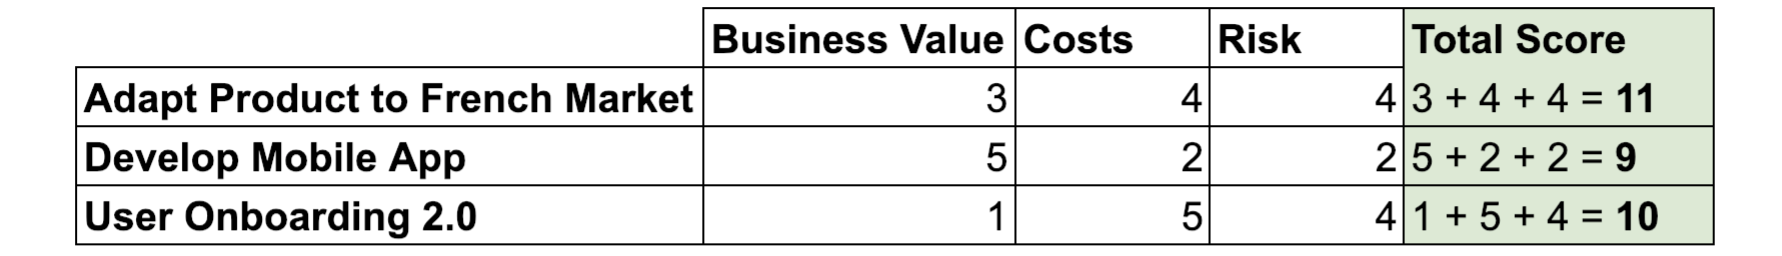 decision matrix non weighted Calculate the total scores